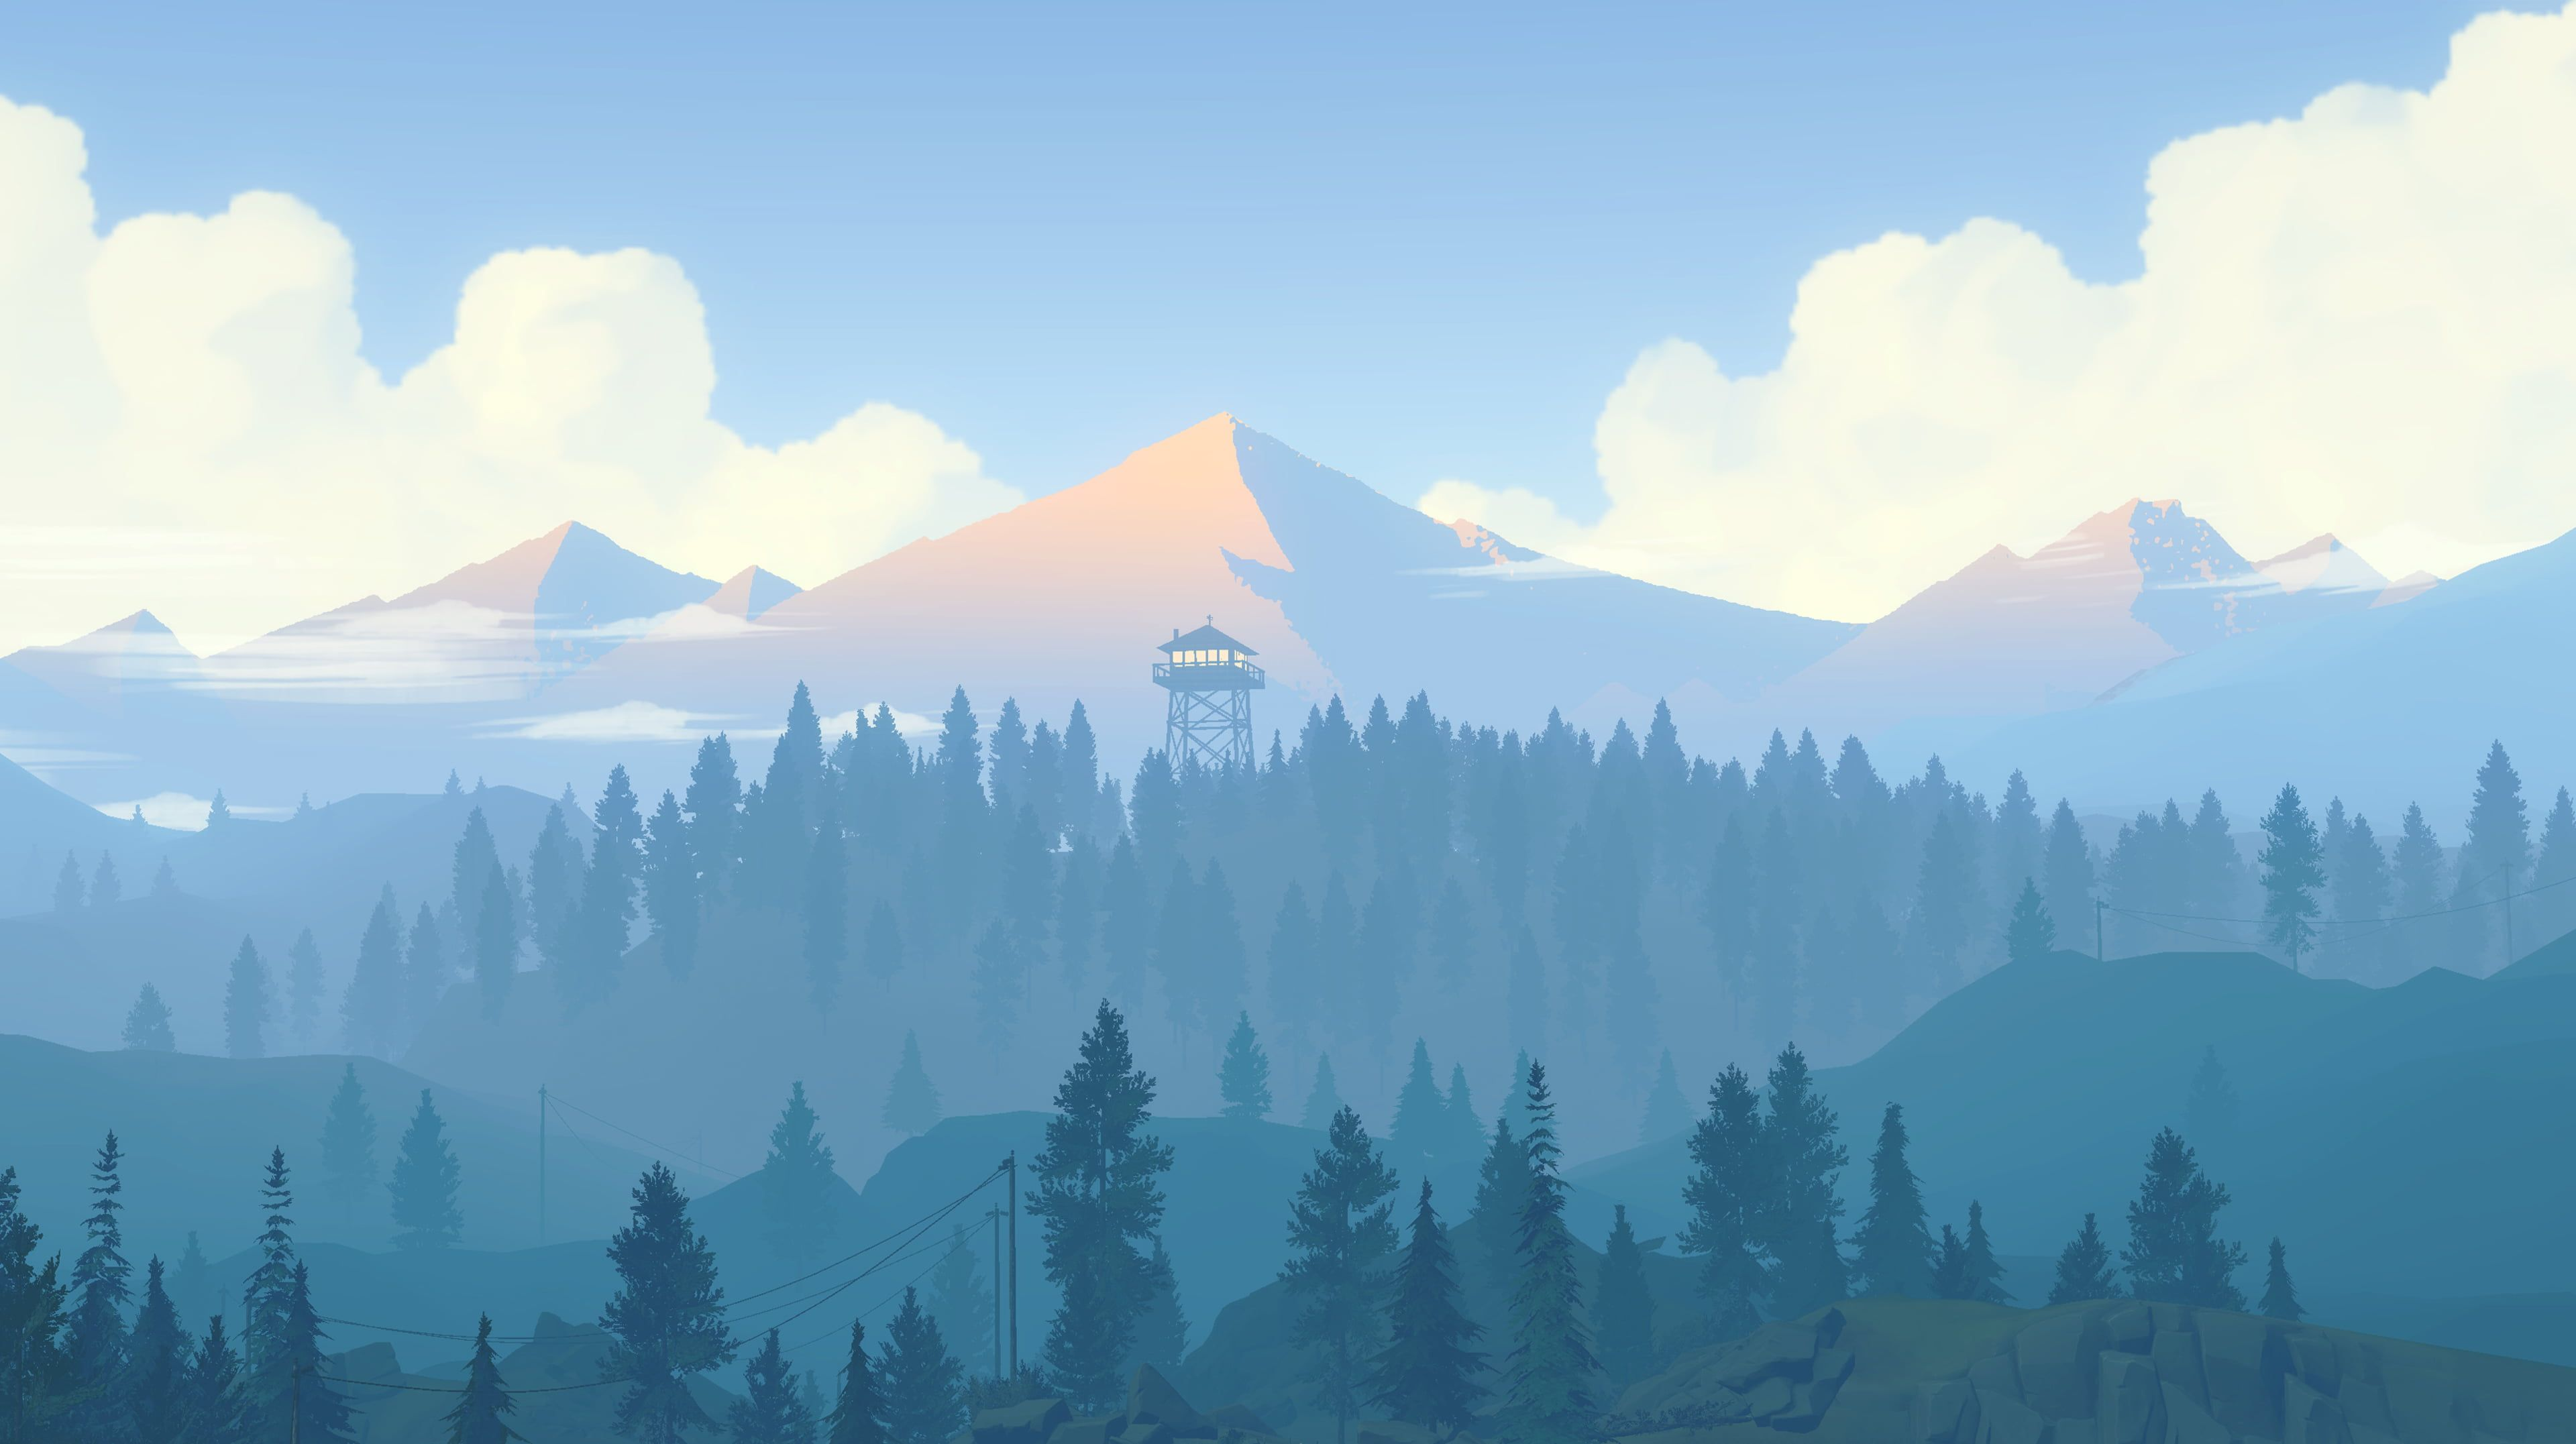 Illustration Of Mountains Surrounded By Trees Under White Clouds Mountains Forest Artwork Firewatch Cyan 4k Wall Mountain Wallpaper Firewatch Background